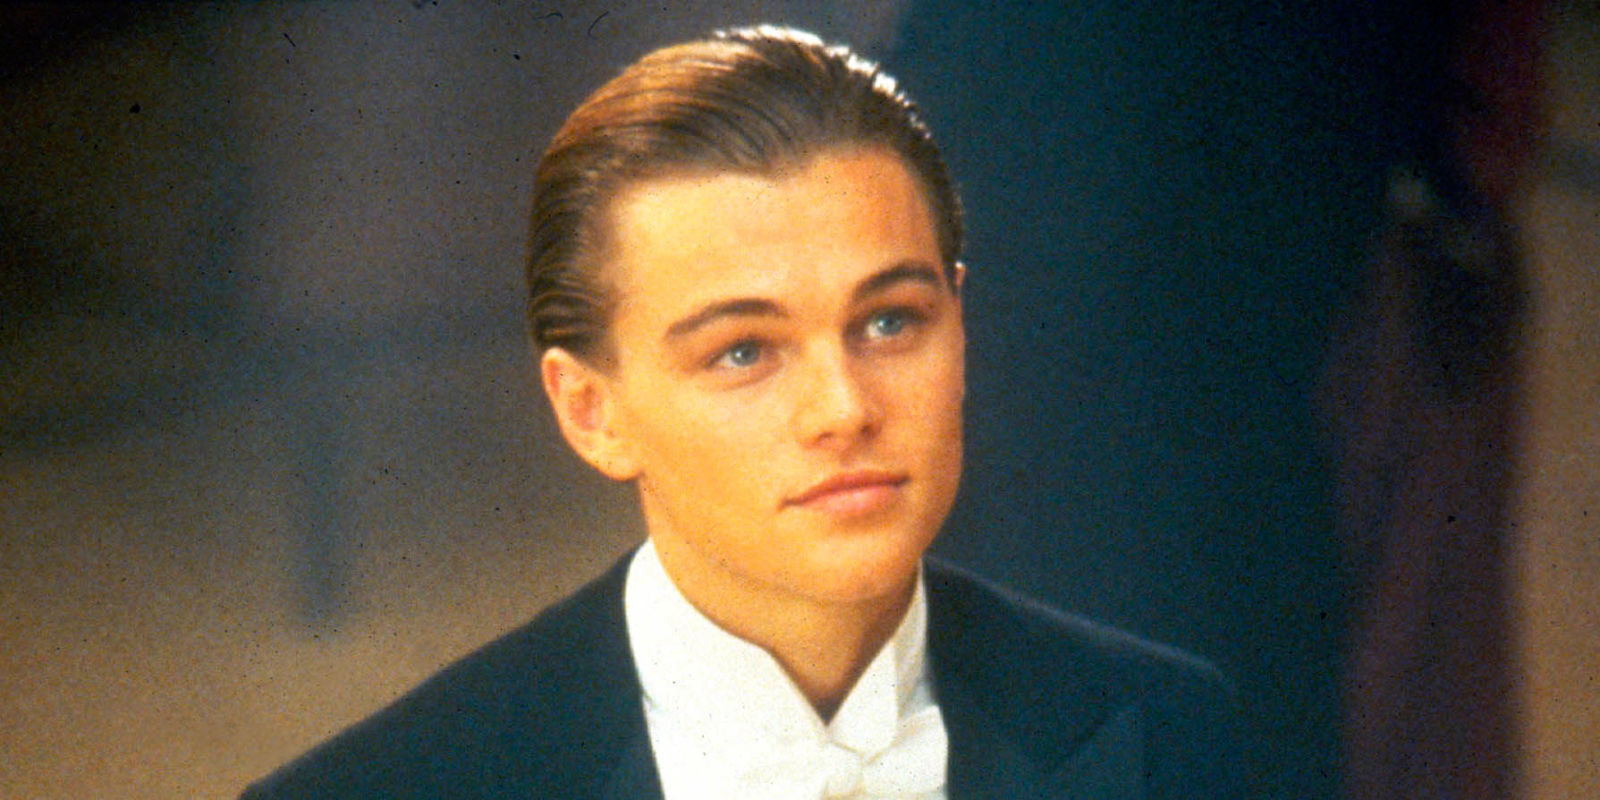 ... news will make you fall even more in love with Leonardo DiCaprio